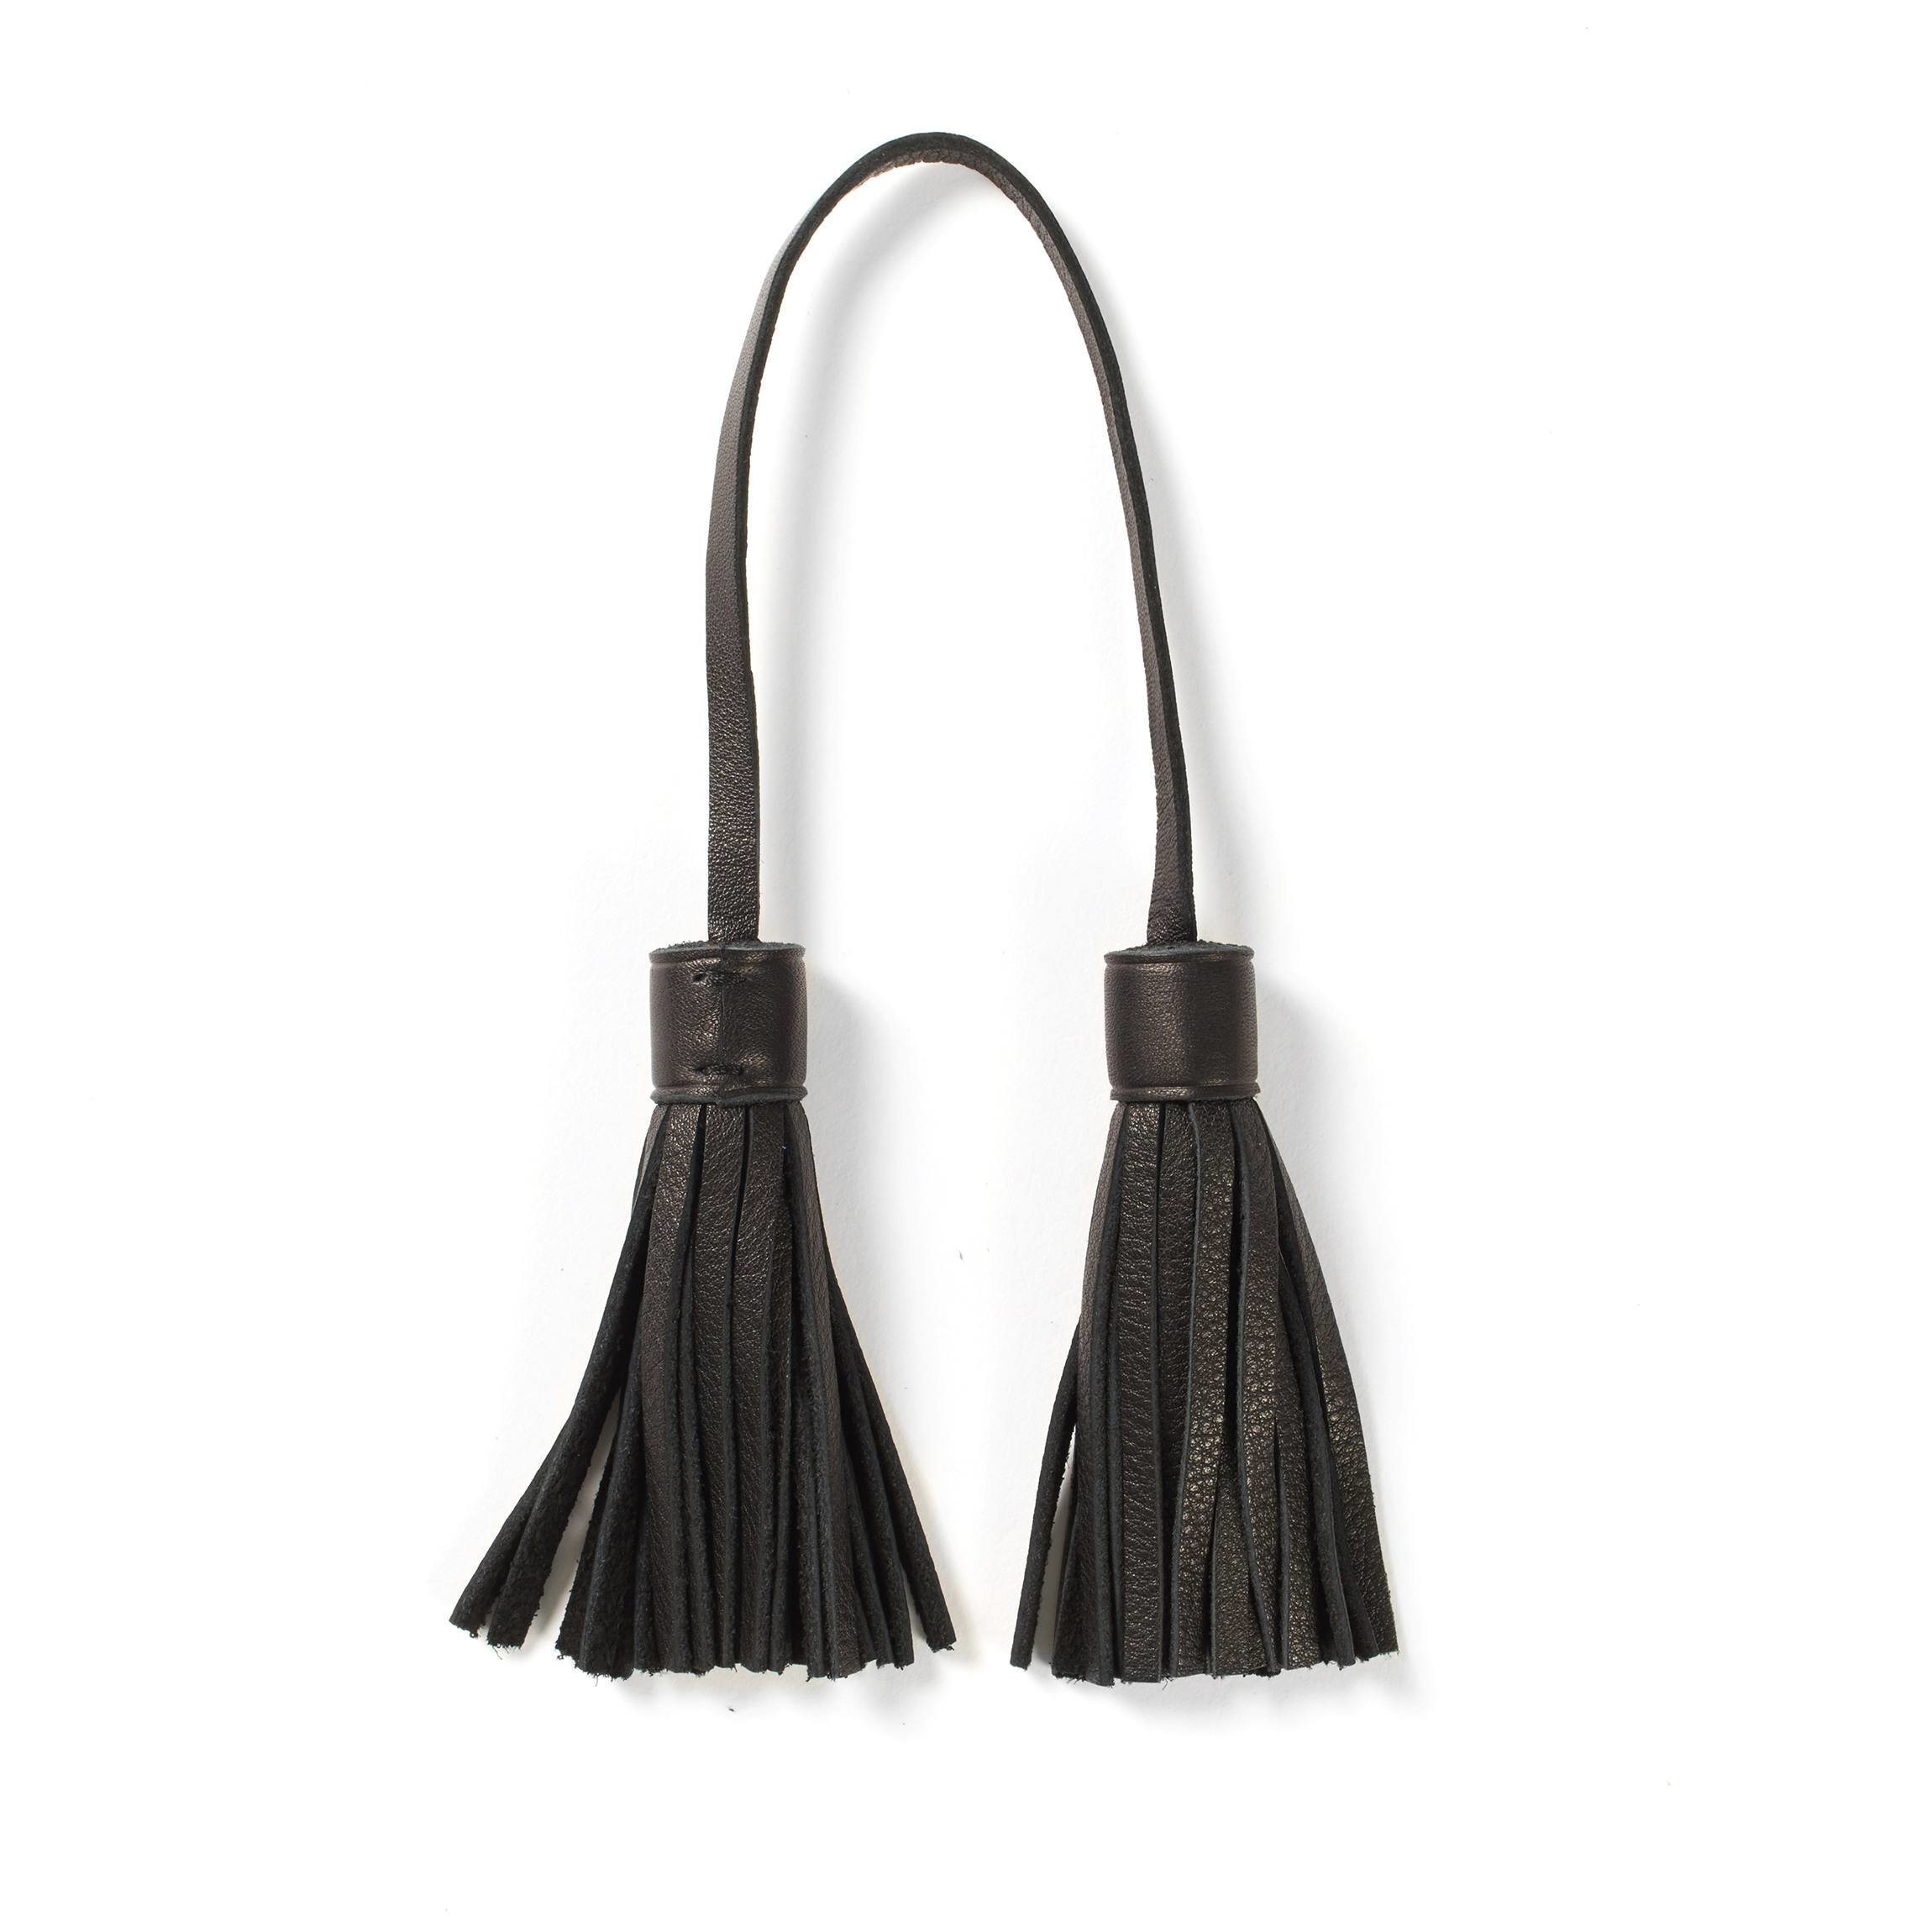 Tassel Bag Tag - Full Grain Leather - Black Onyx (black)